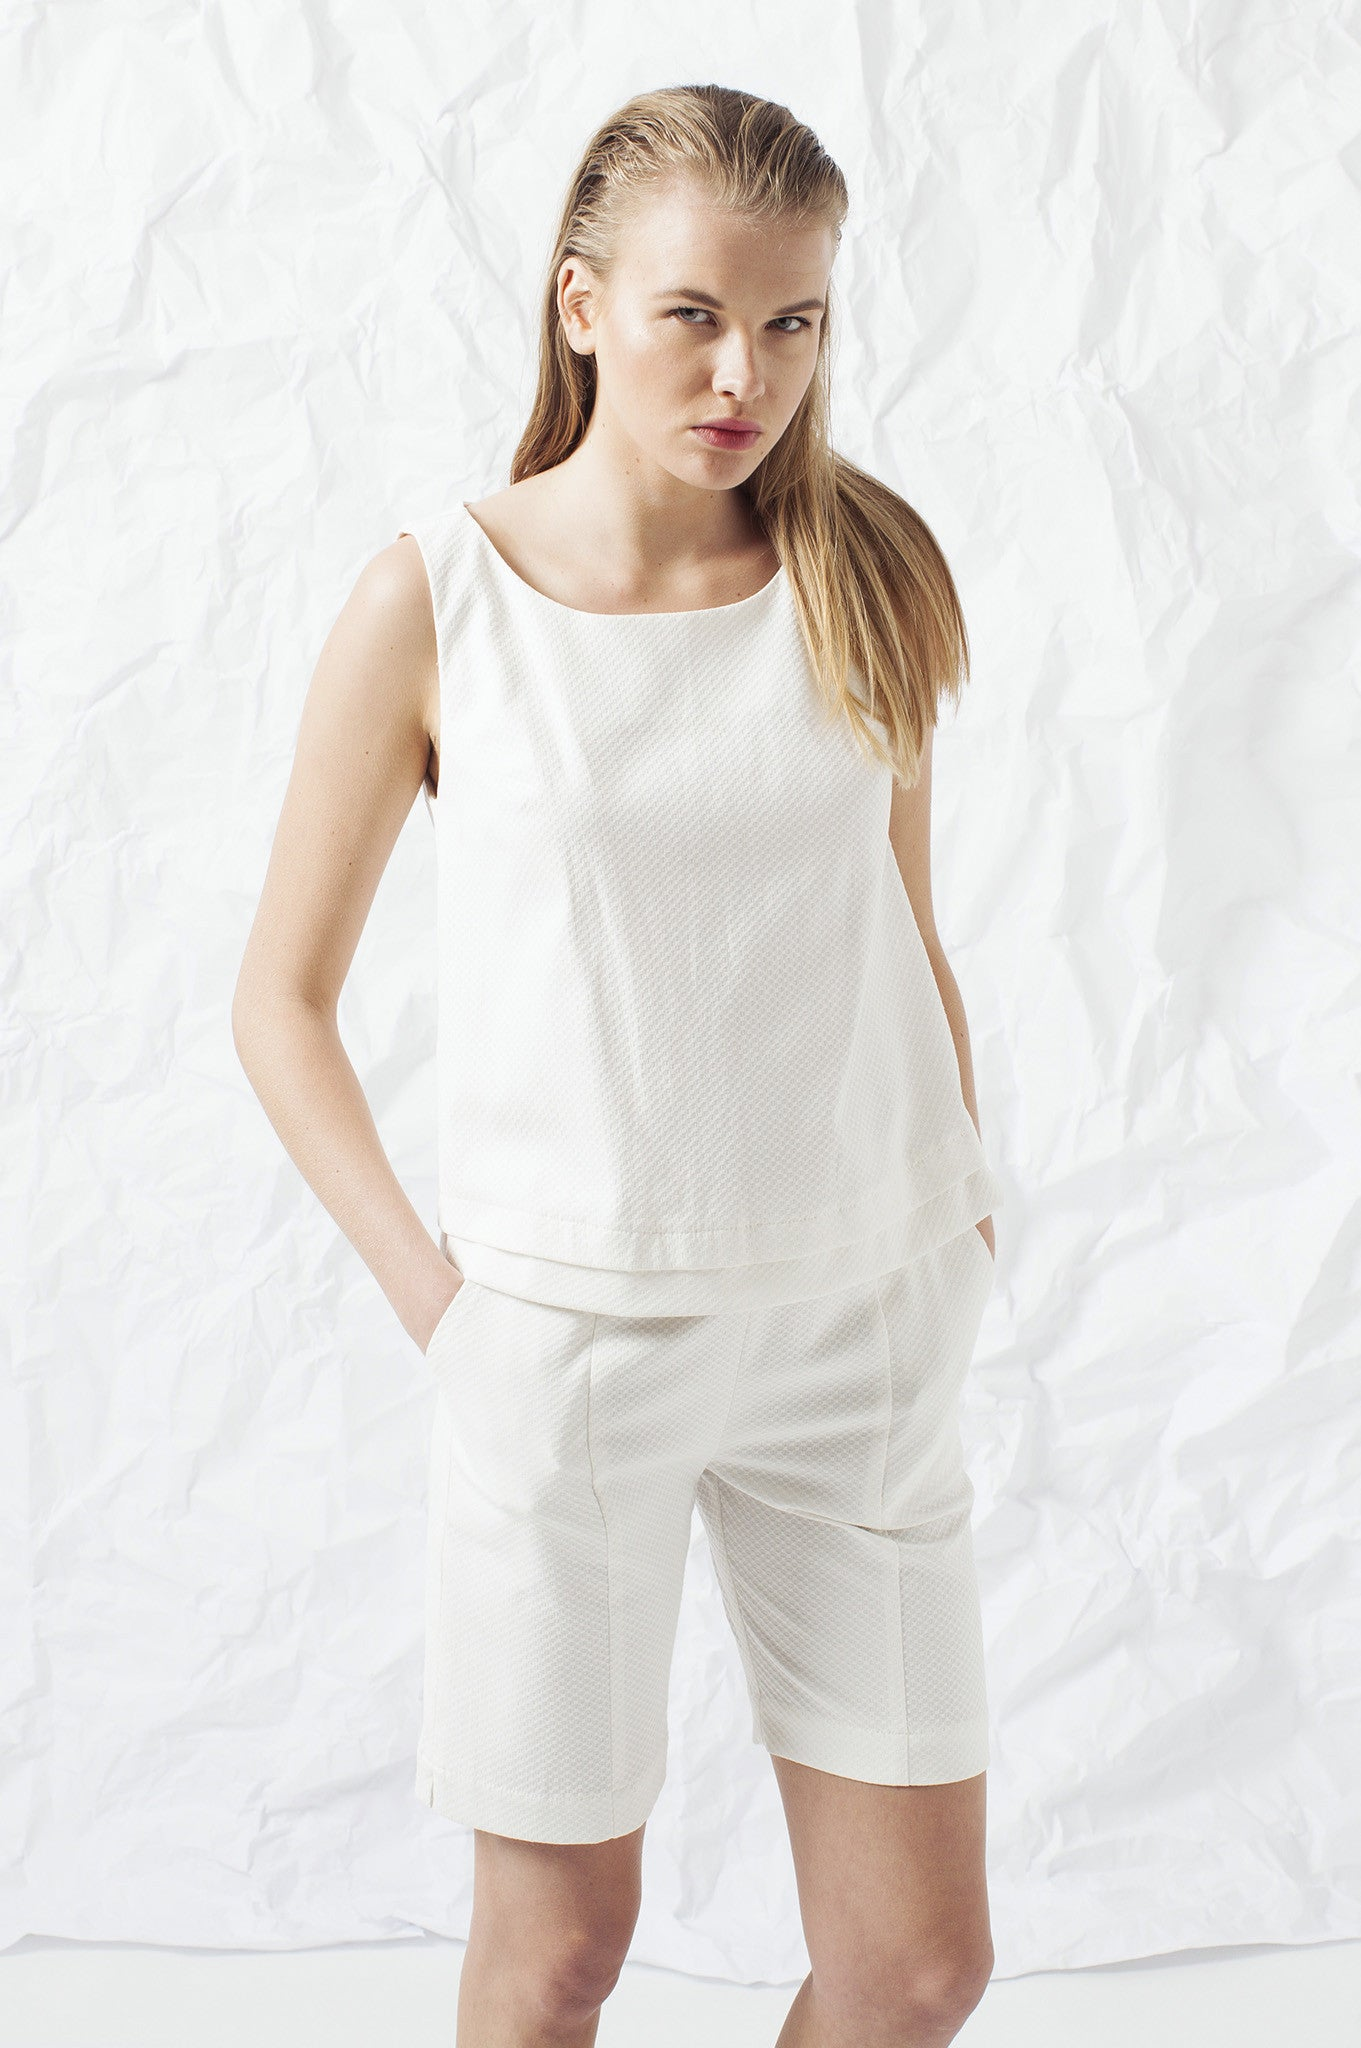 ELEGANT WHITET WOMAN PANTS